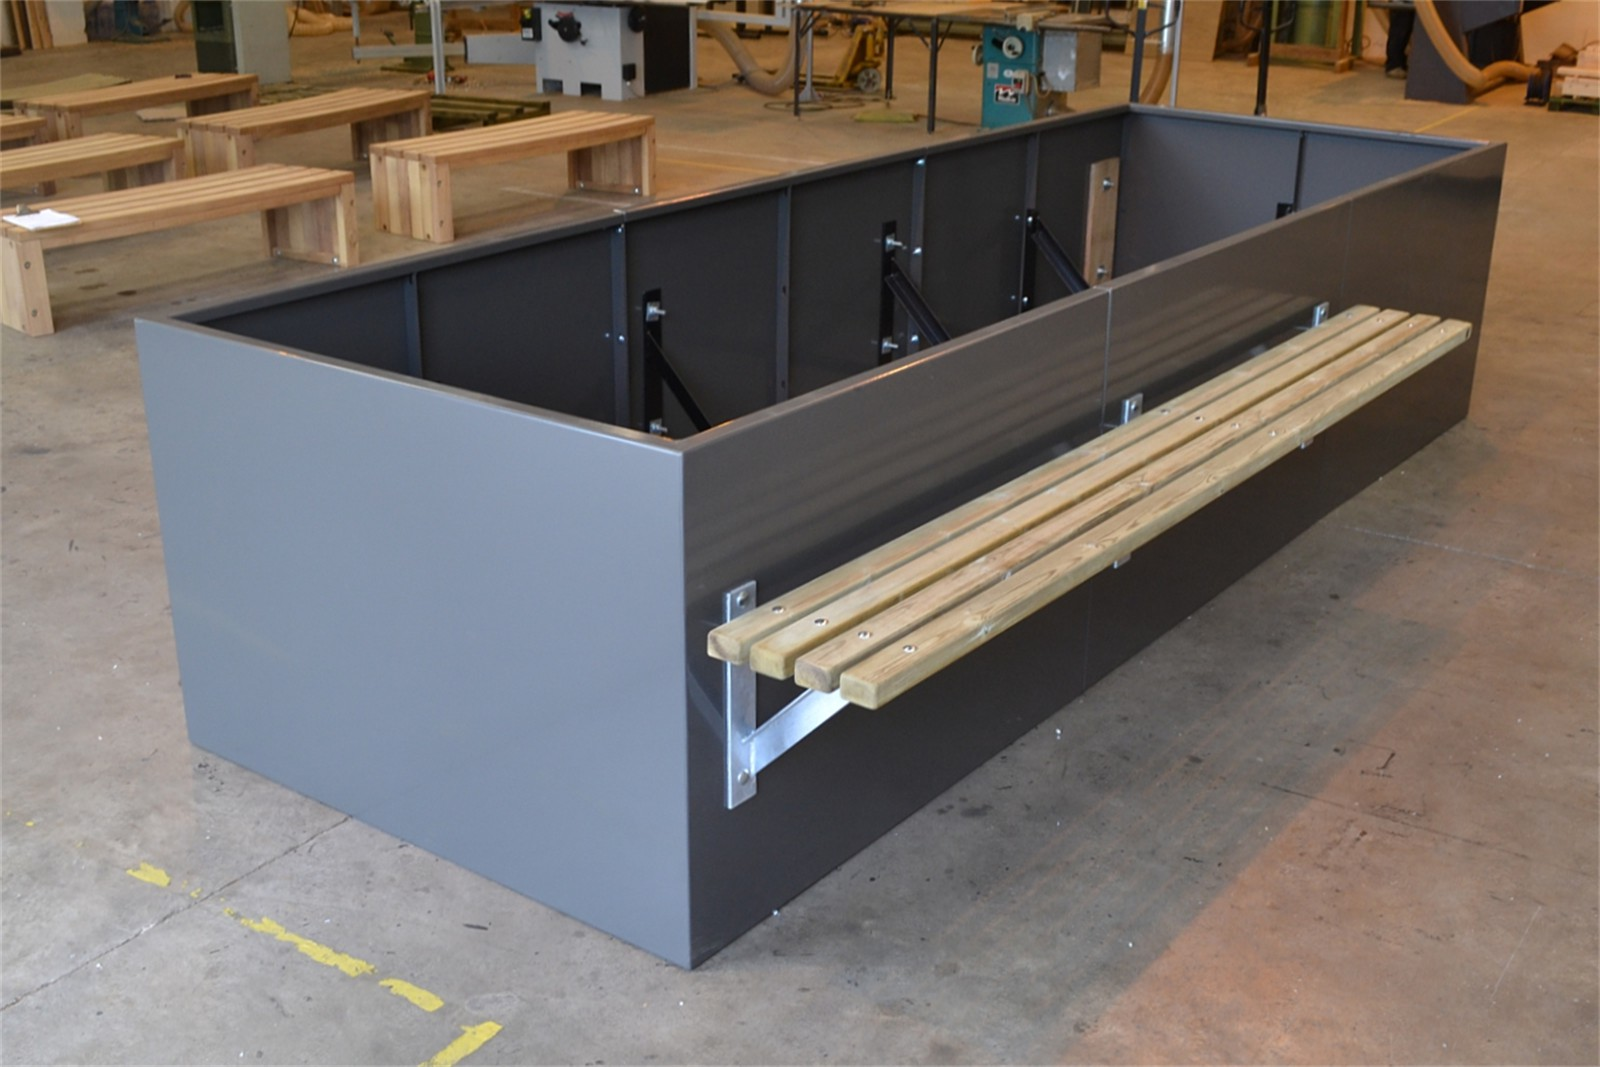 c121v03 - Stratum planter walling with bench in manufacture